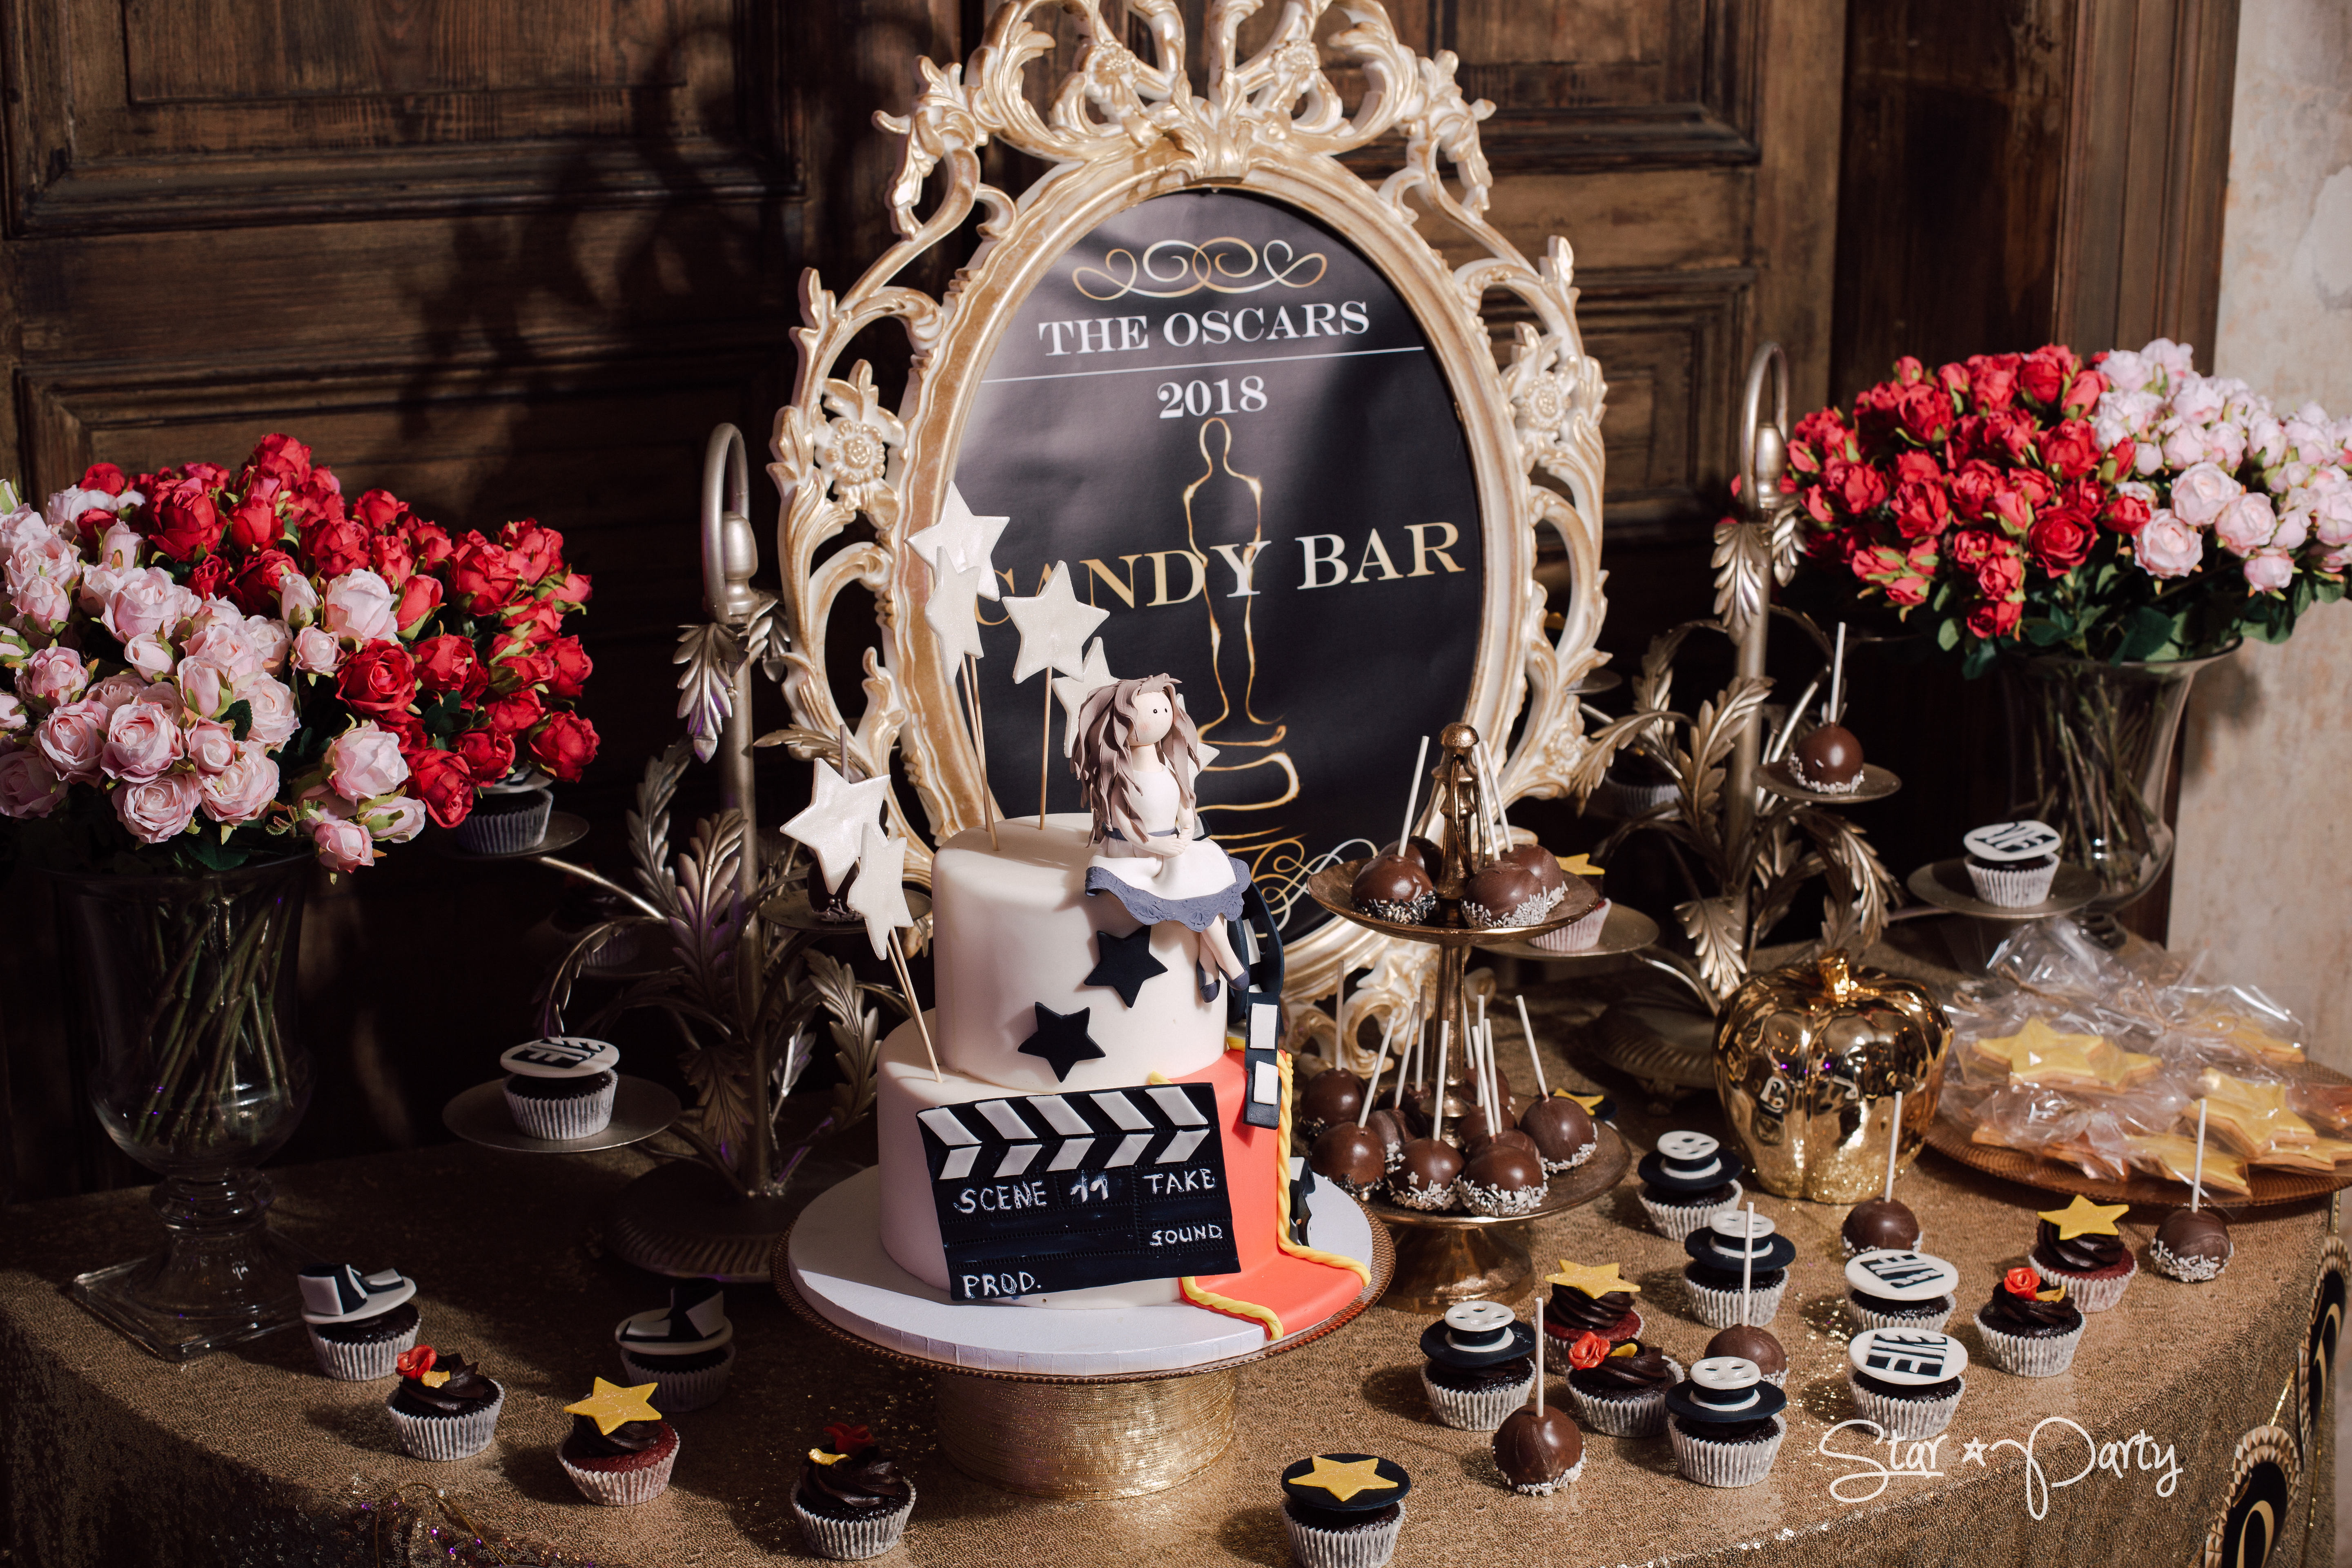 Hollywood Candy Bar